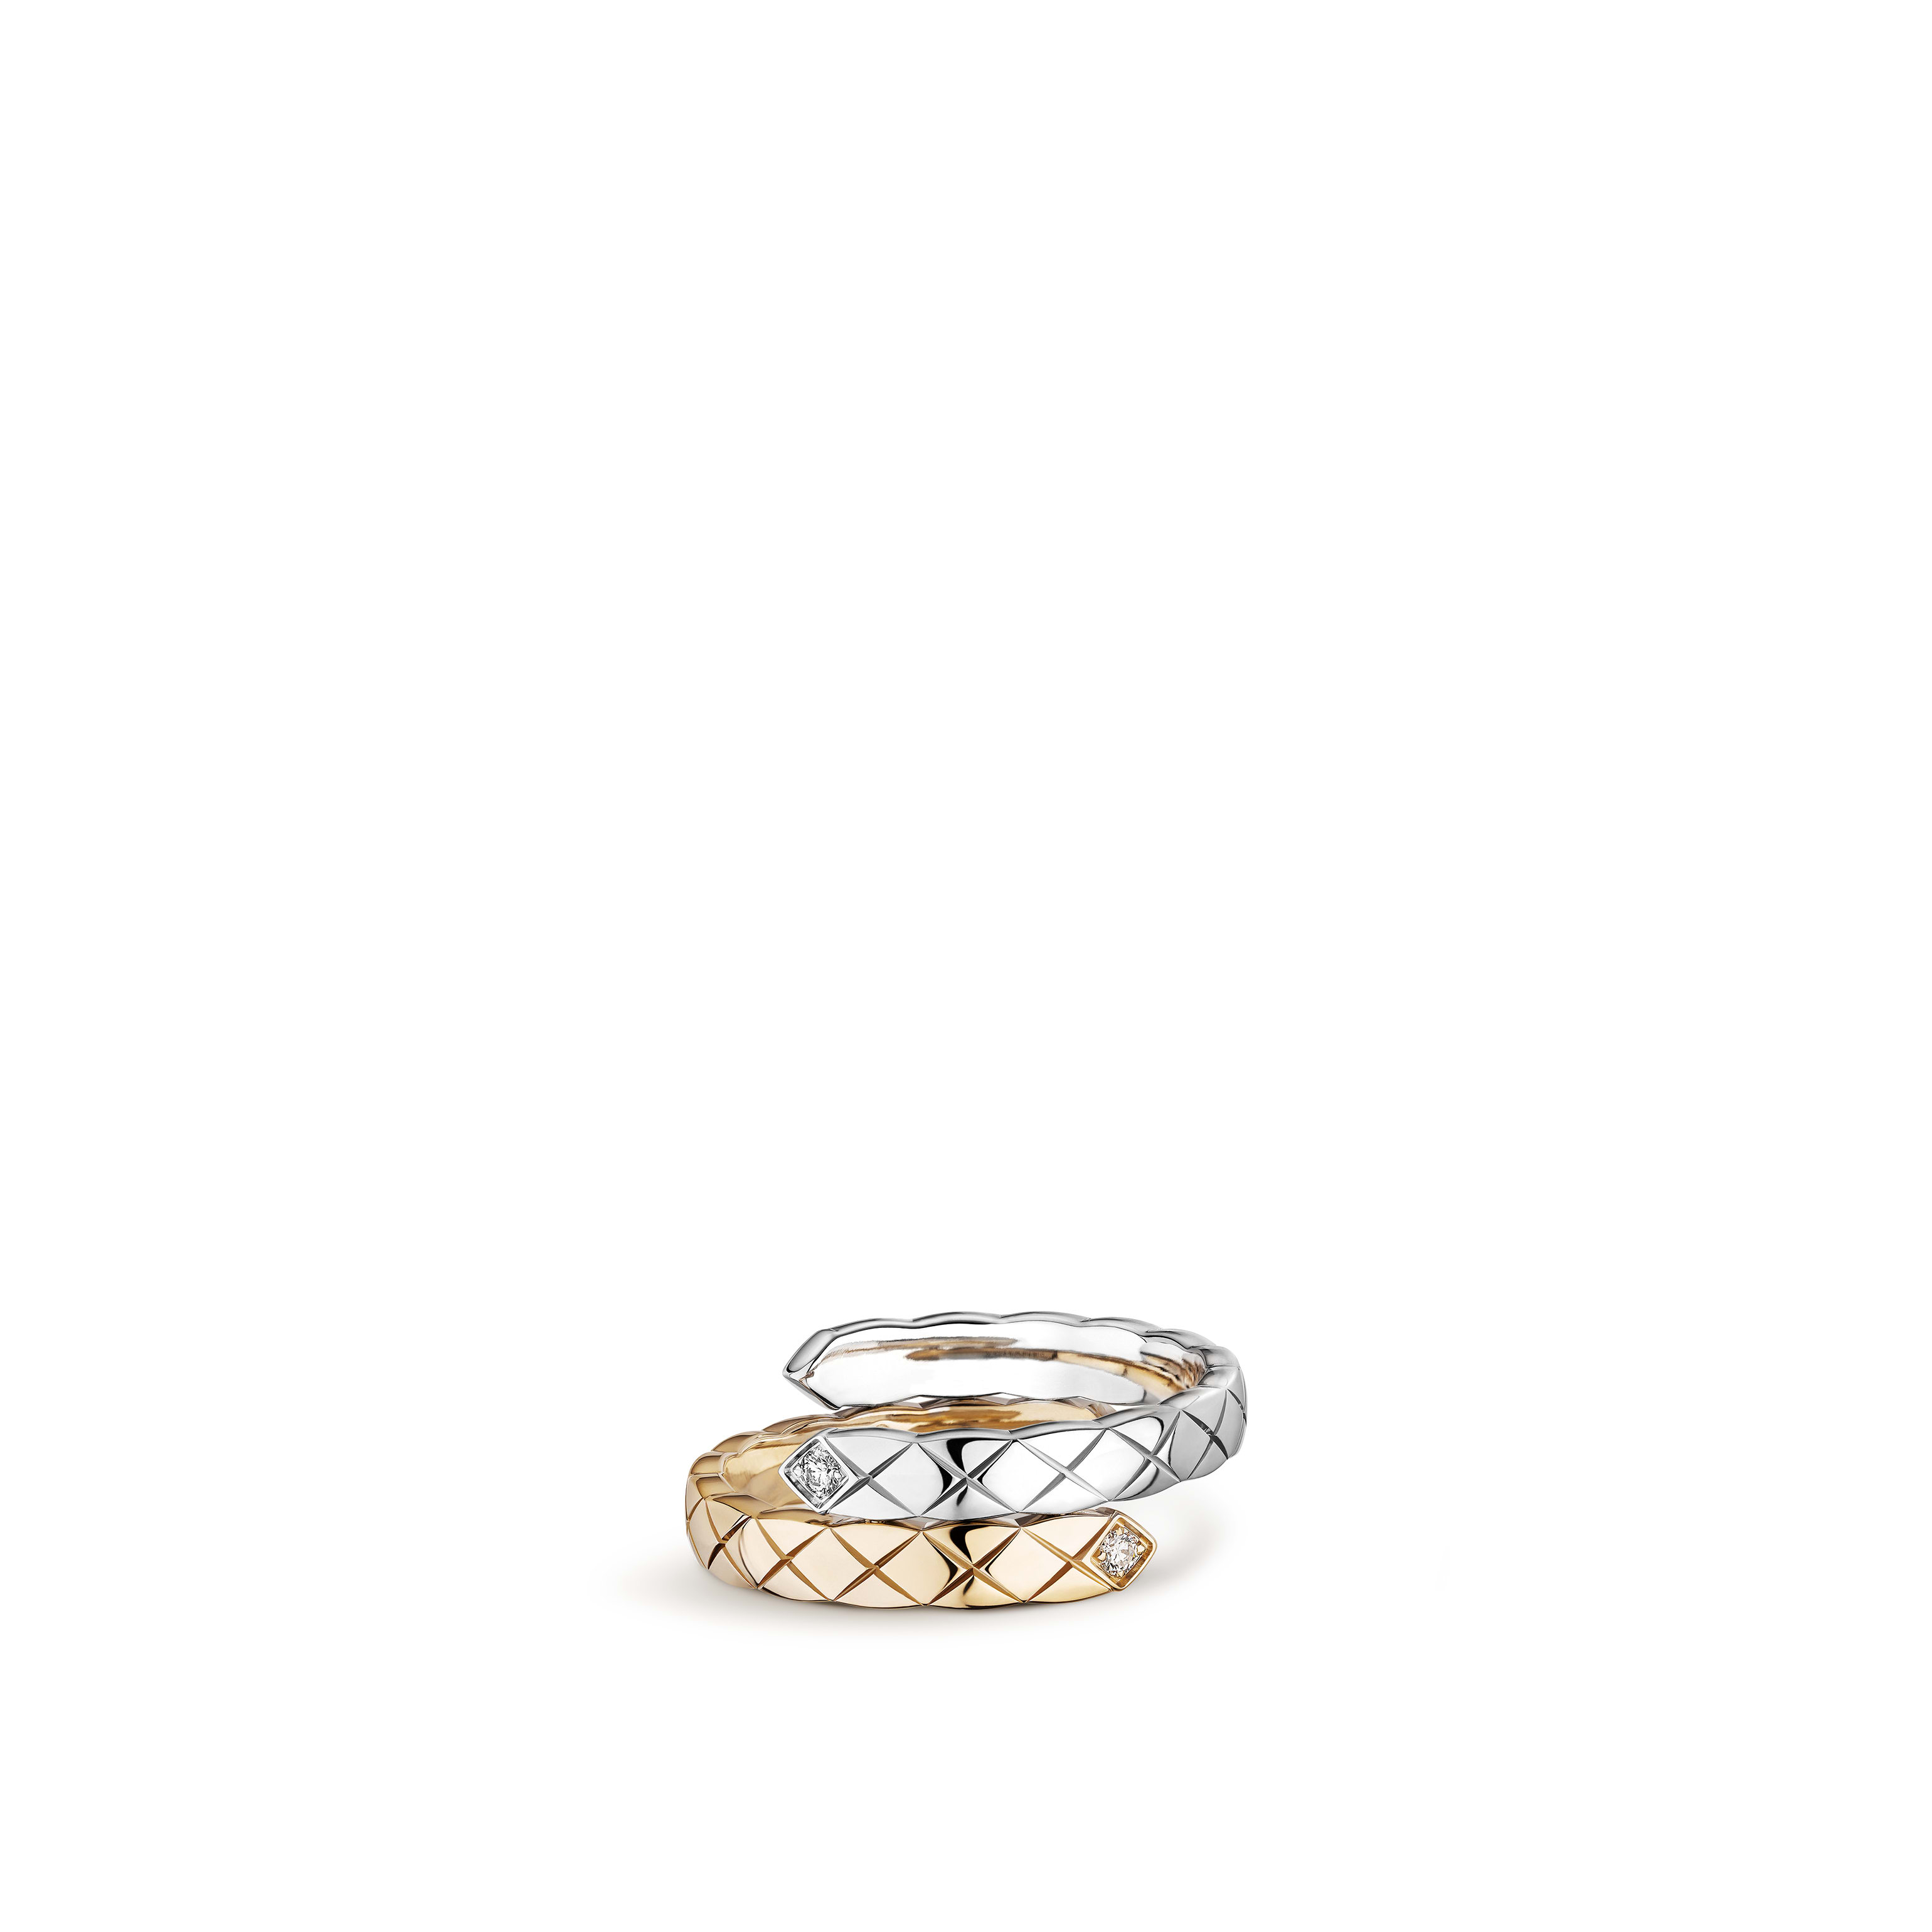 Coco Crush Toi et Moi ring - Quilted motif, small version, 18K white and BEIGE GOLD, diamonds - CHANEL - Default view - see standard sized version